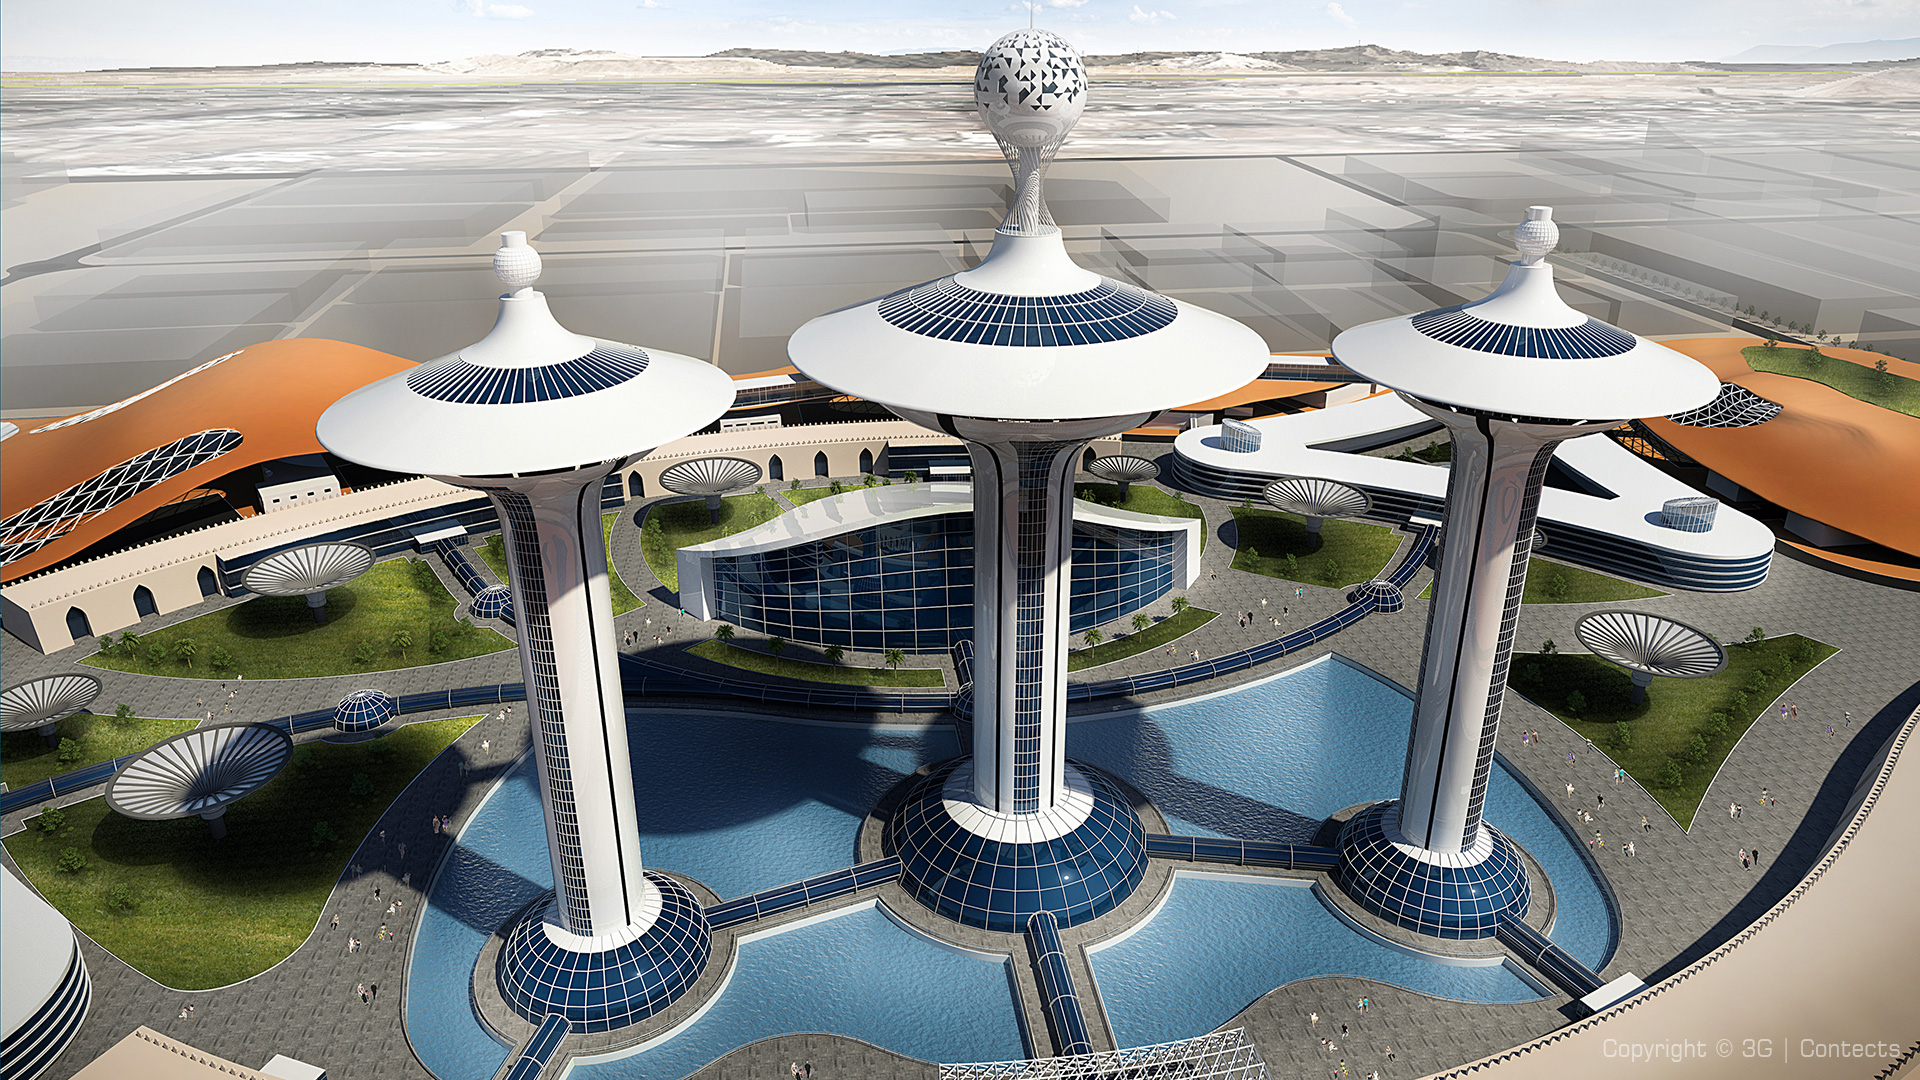 UAE University Science and Innovation Park